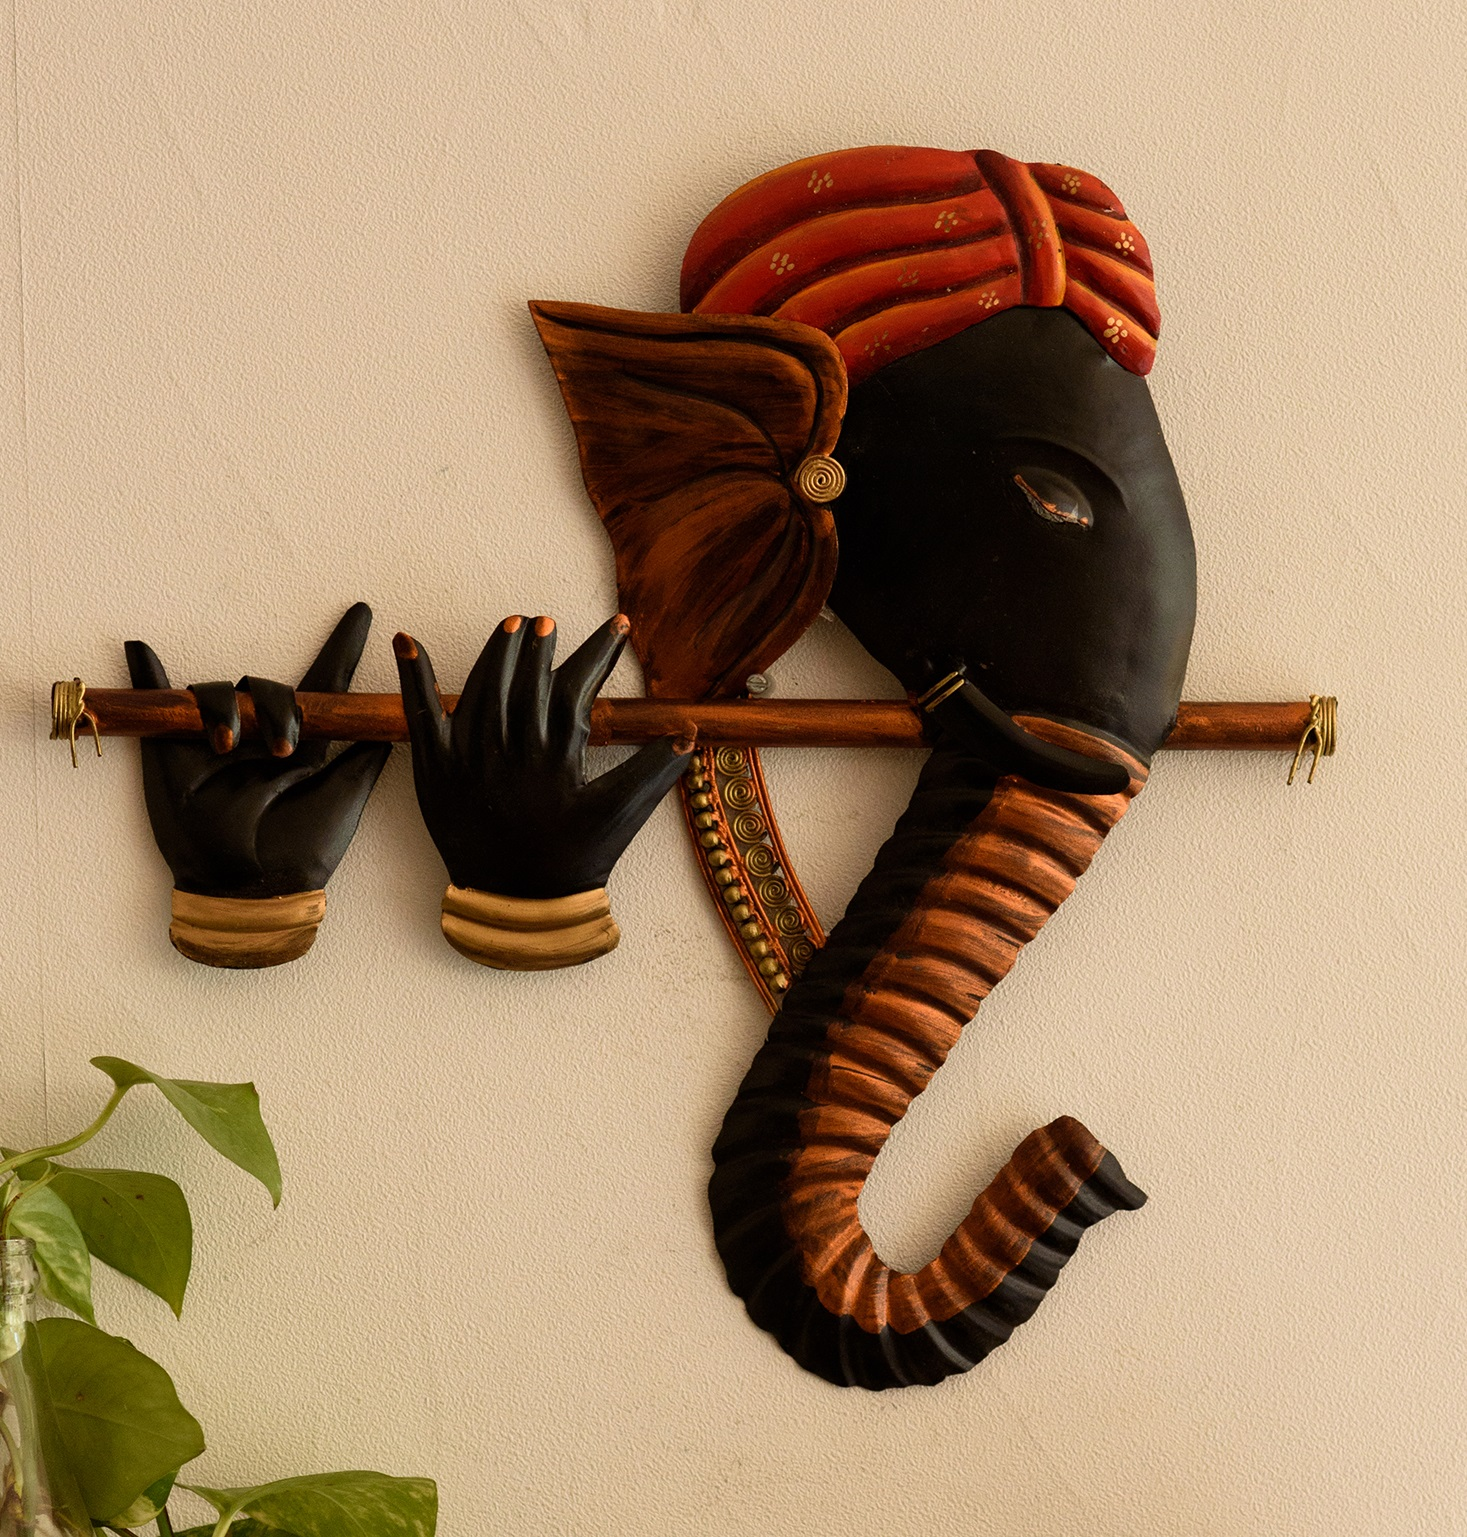 Wrought Iron Bansuri Ganesha Wall Hanging Indian Home Decor